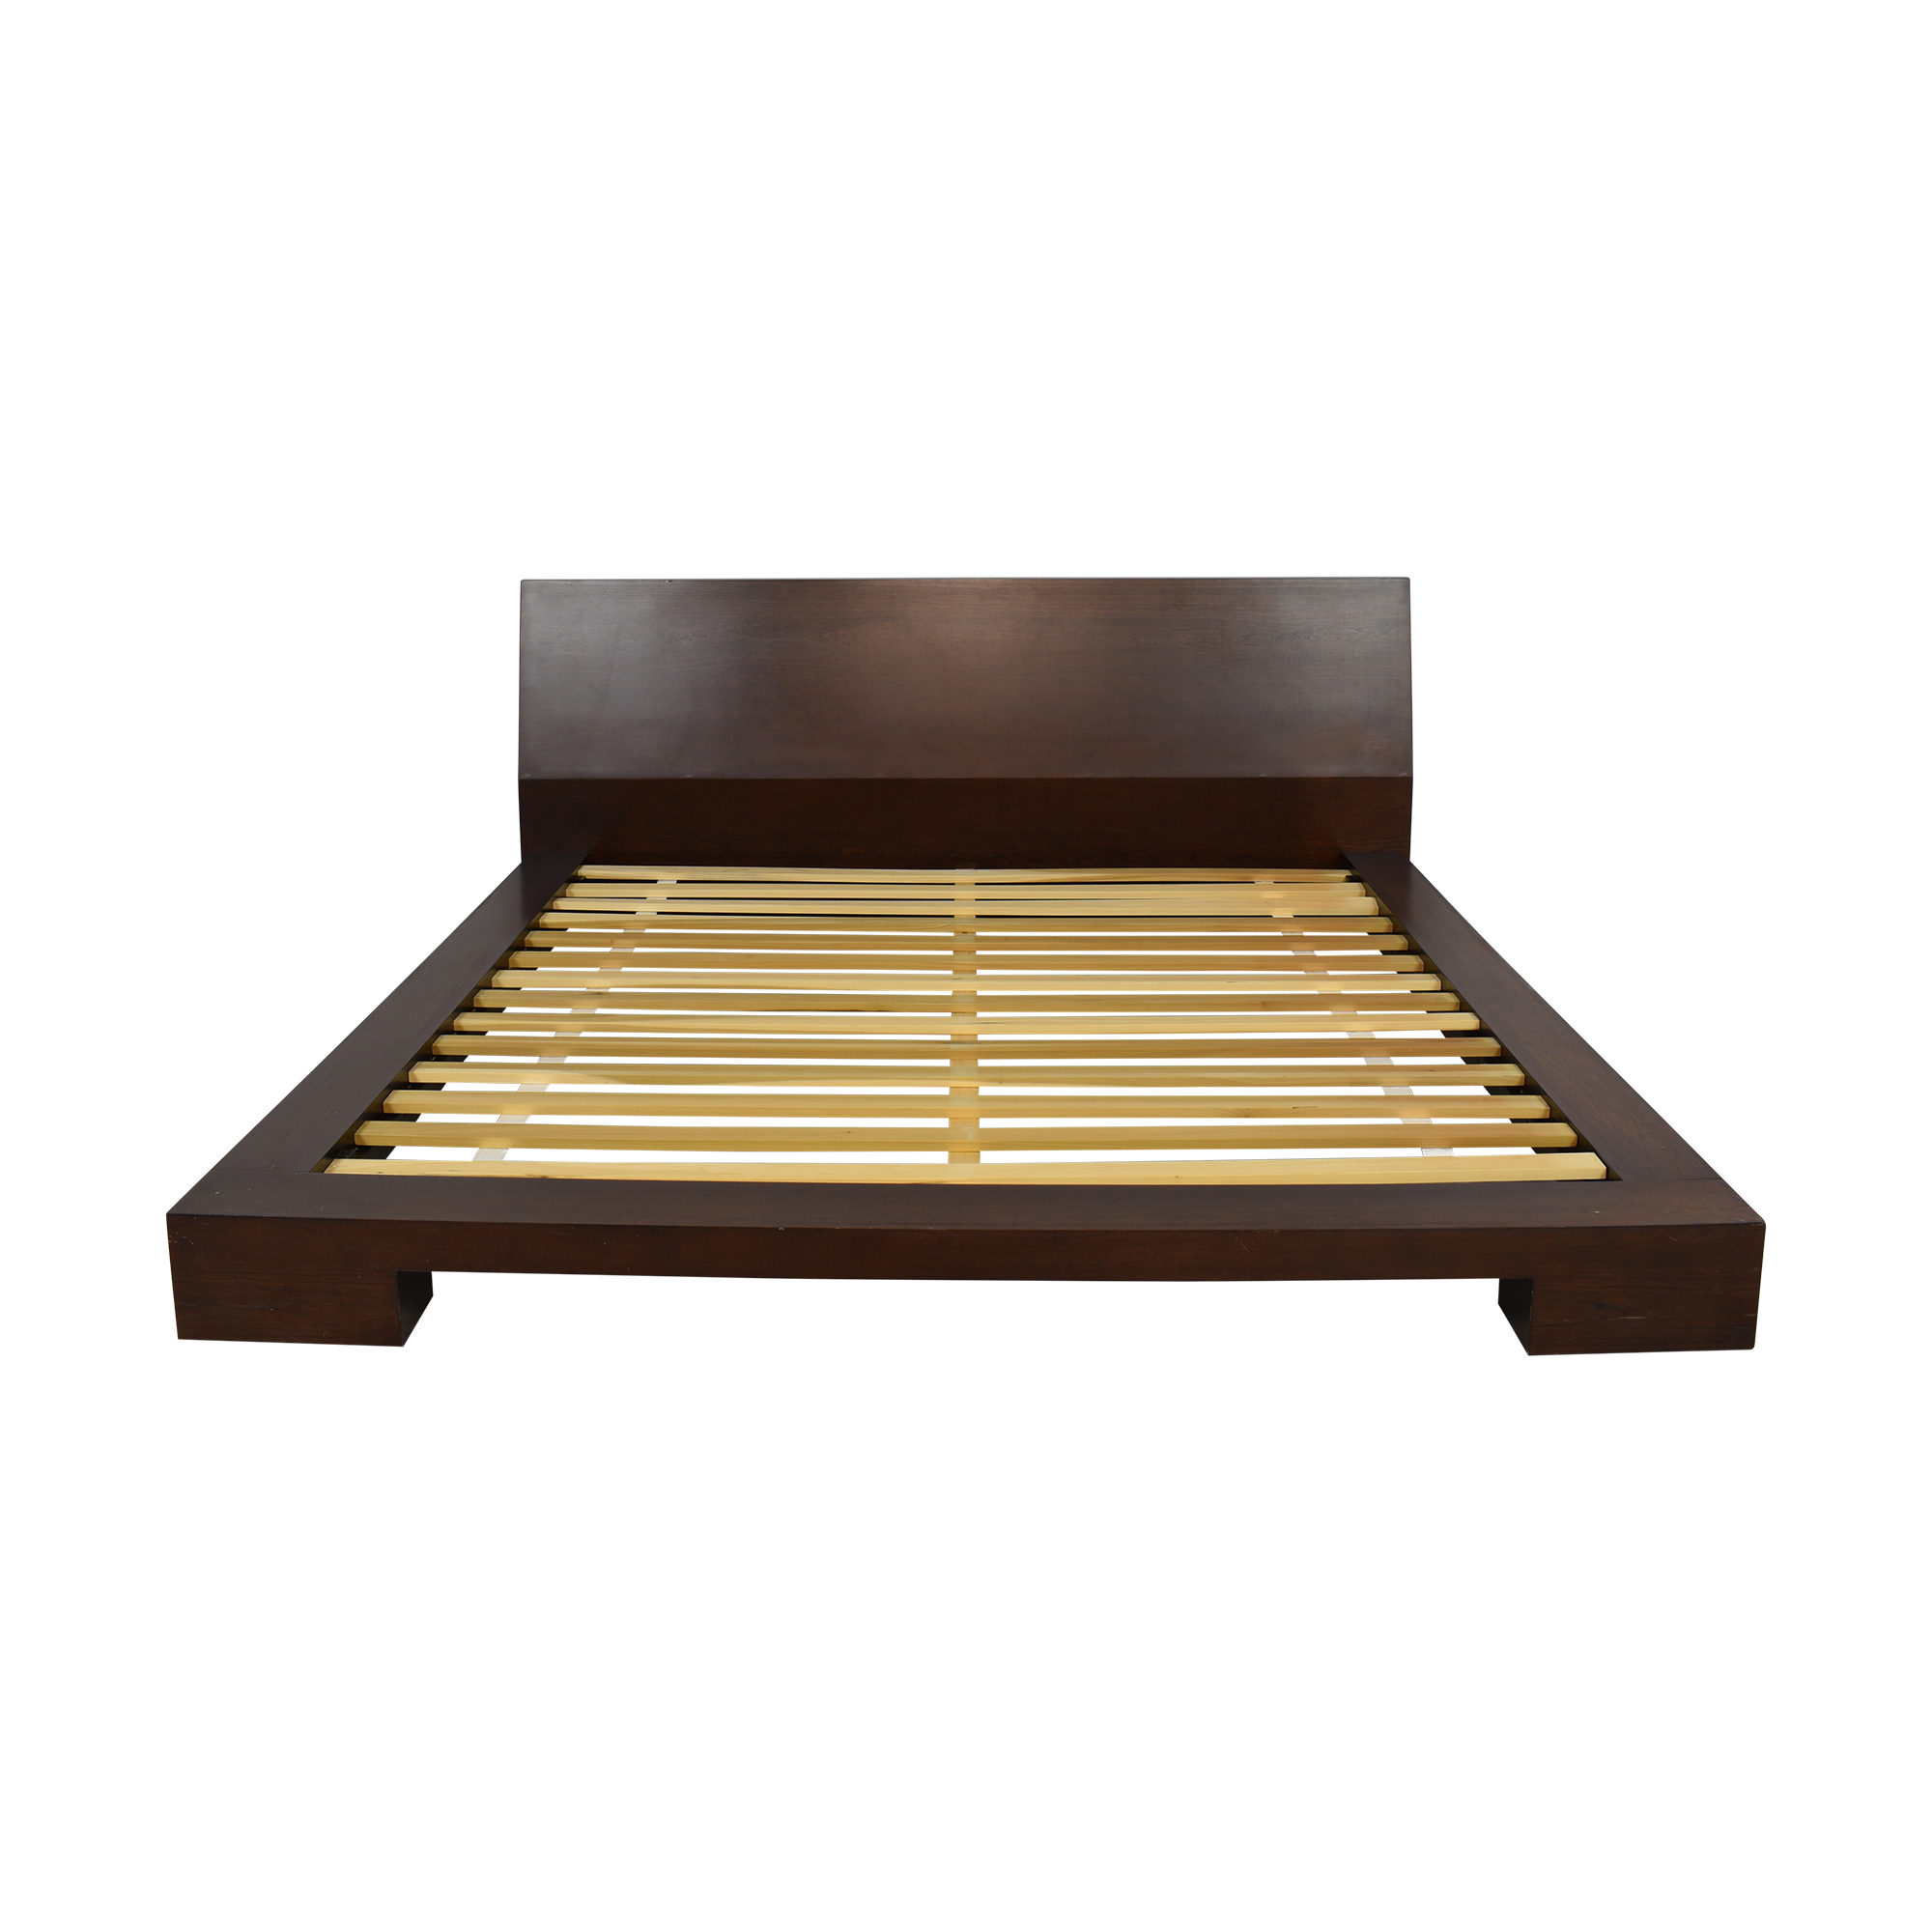 buy Crate & Barrel Asher King Bed Crate & Barrel